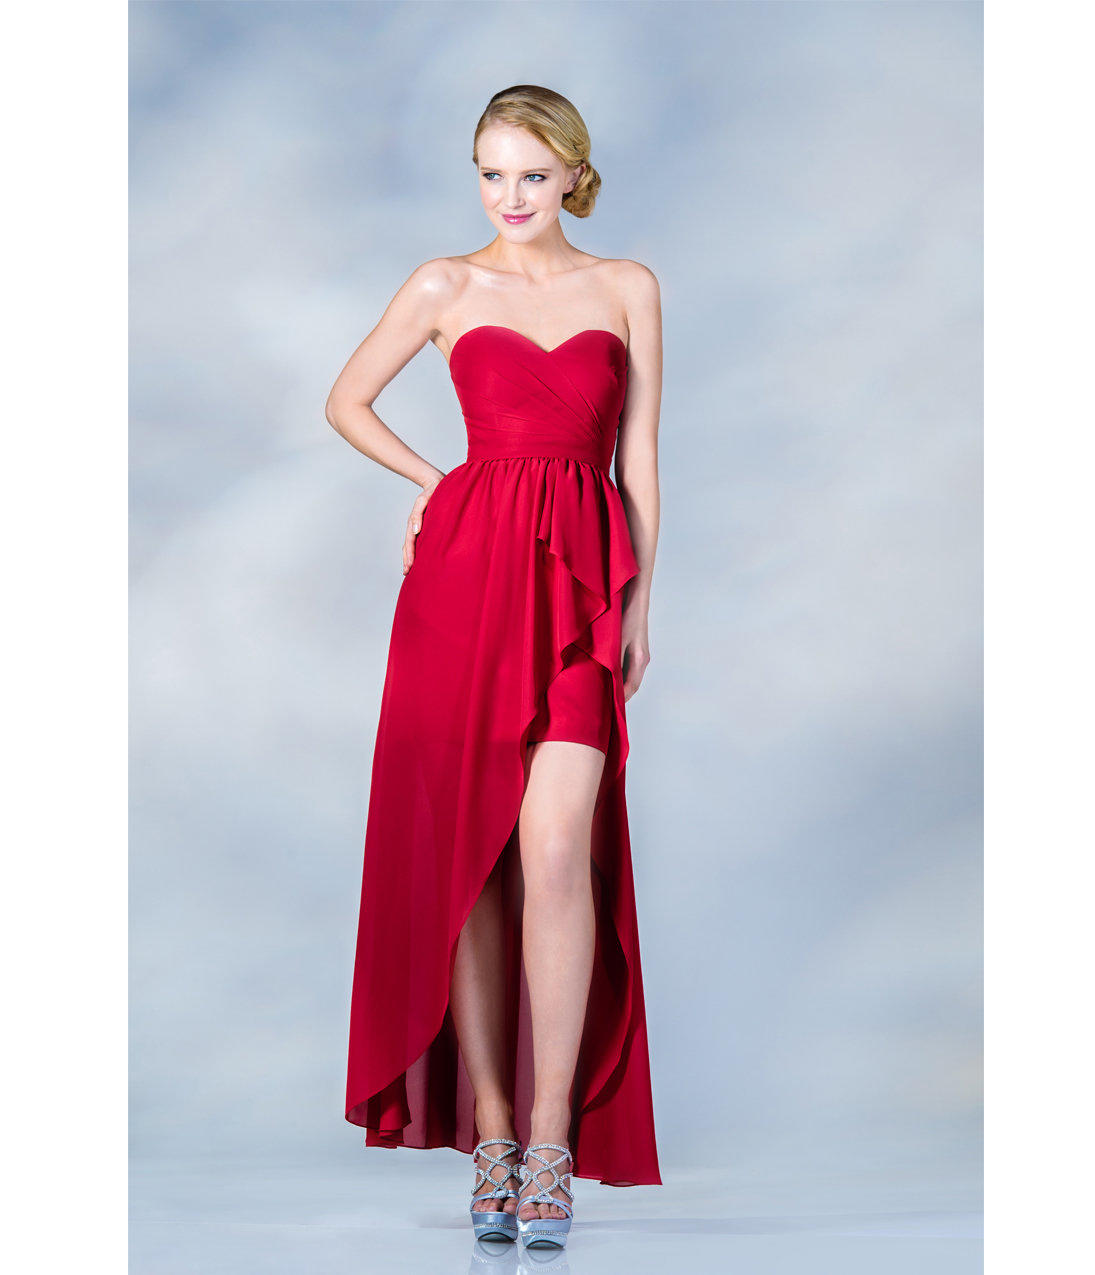 2013 Prom Dresses- Red High-Low Strapless from Unique VintageRed High Low Prom Dresses 2013